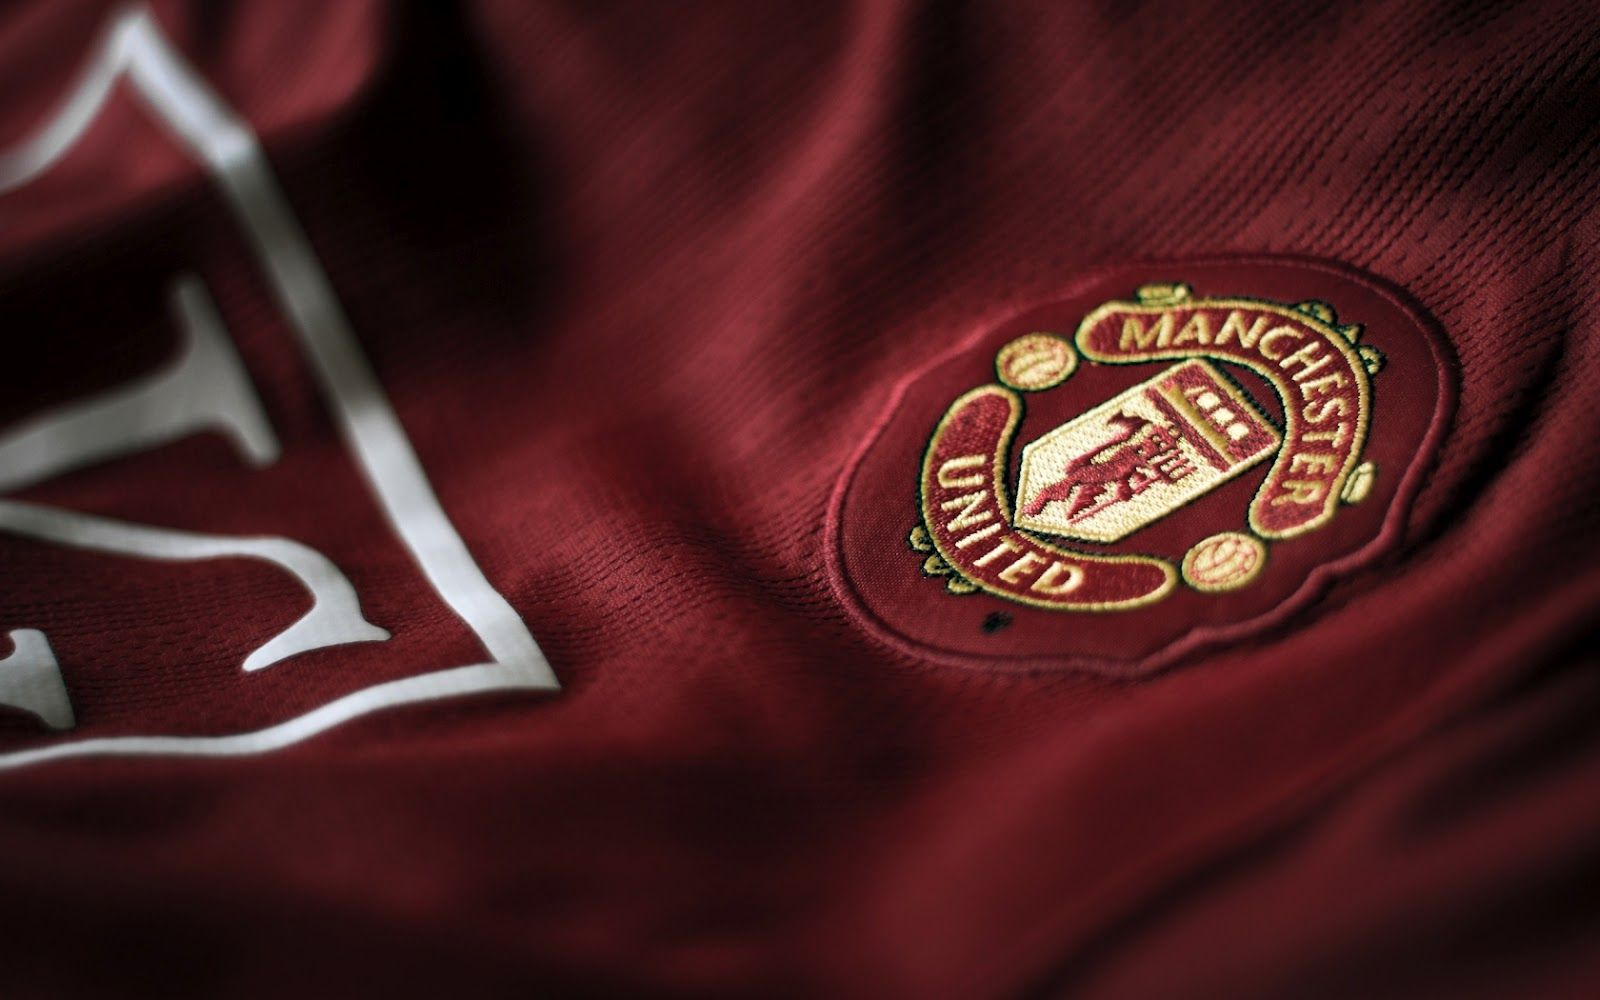 Manchester United Hd Wallpaper Free Download Wallpaper